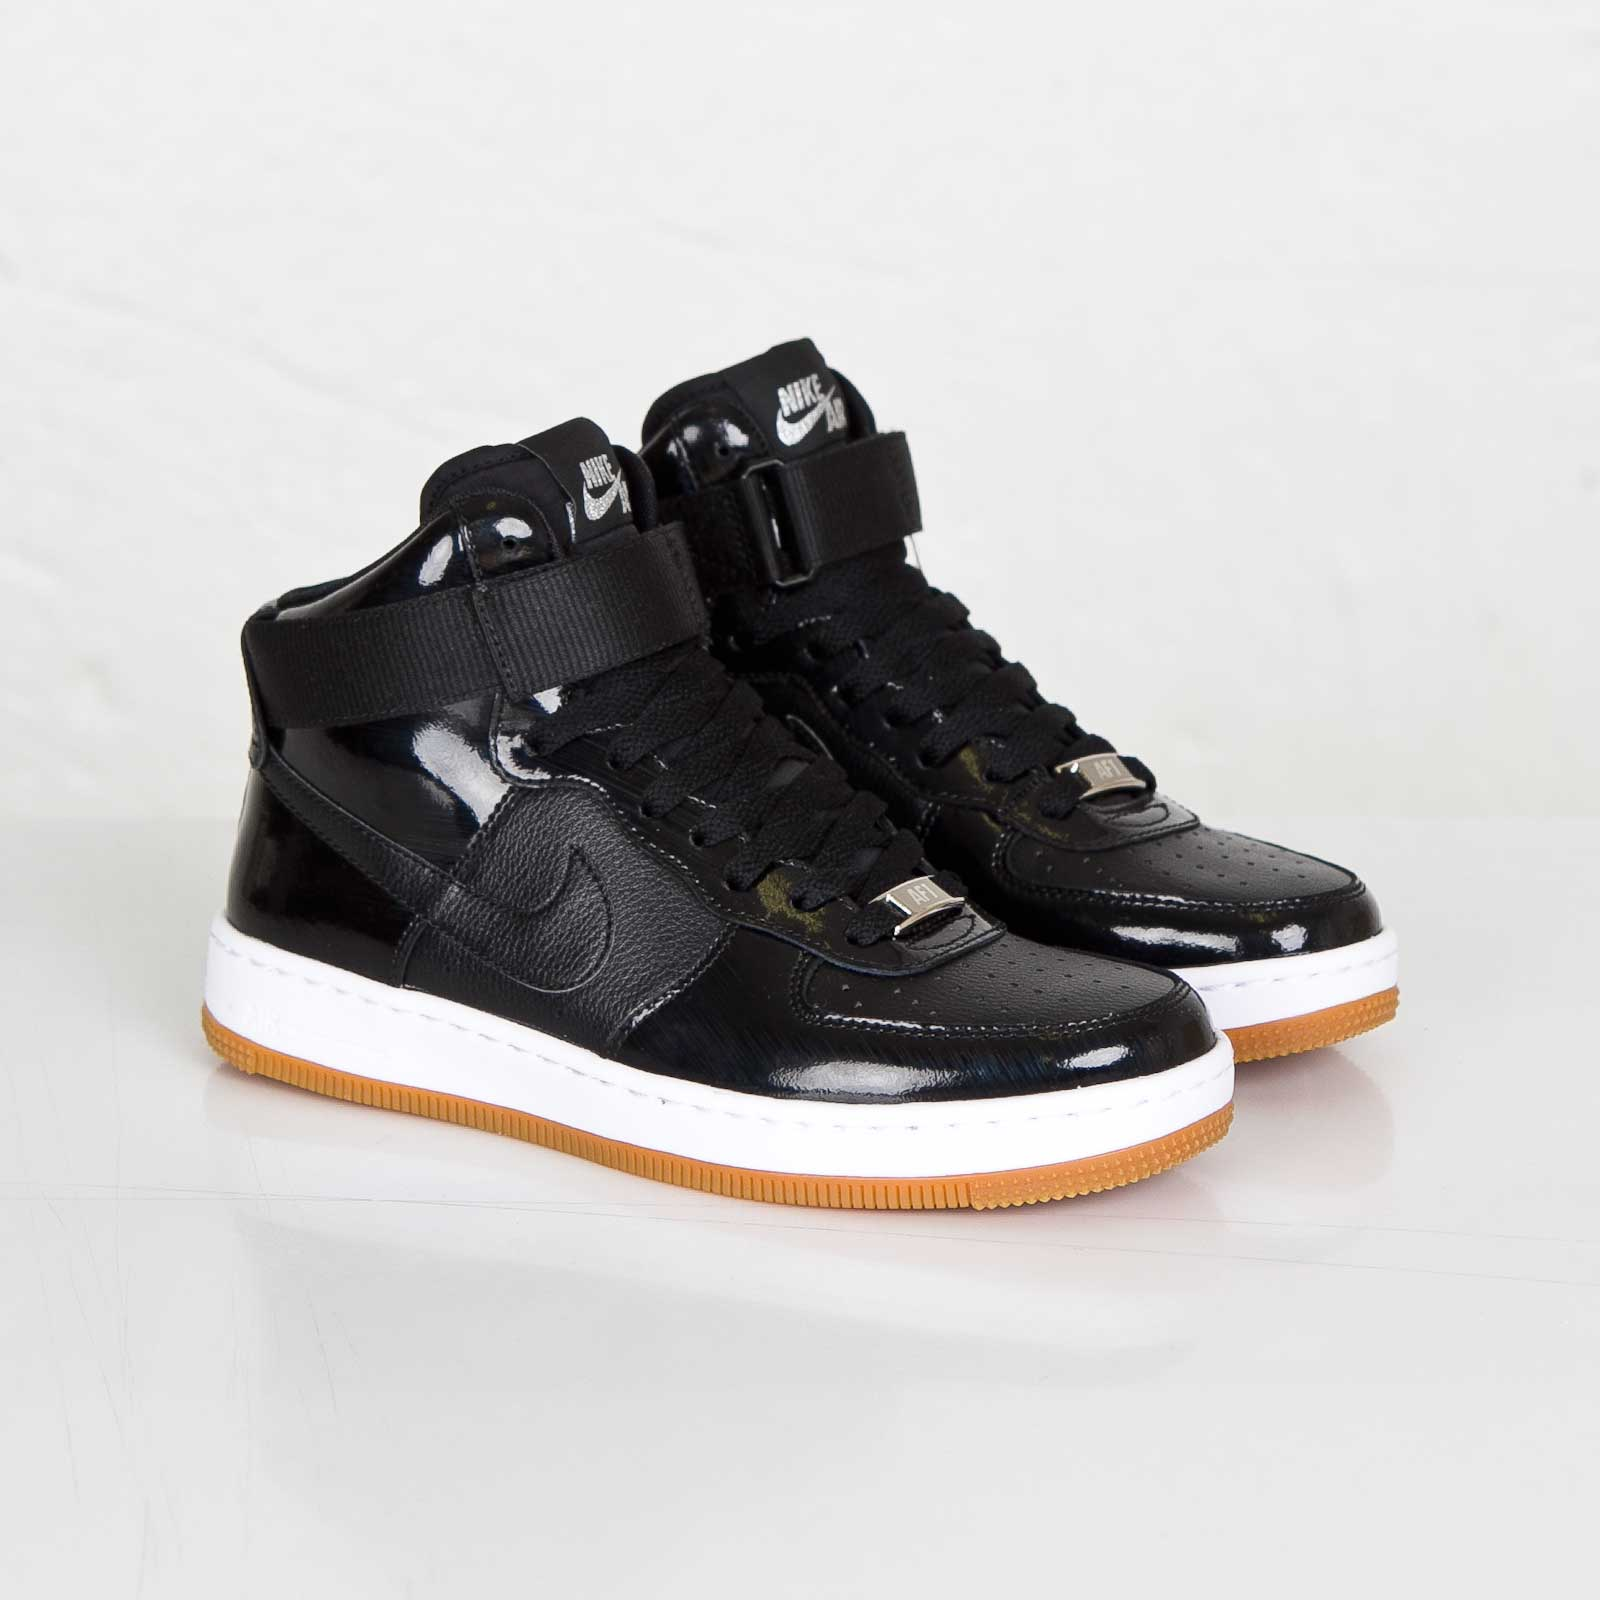 6593d6243494d2 ... black-white 817420- Nike Wmns Air Force 1 Ultra Force Mid . ...